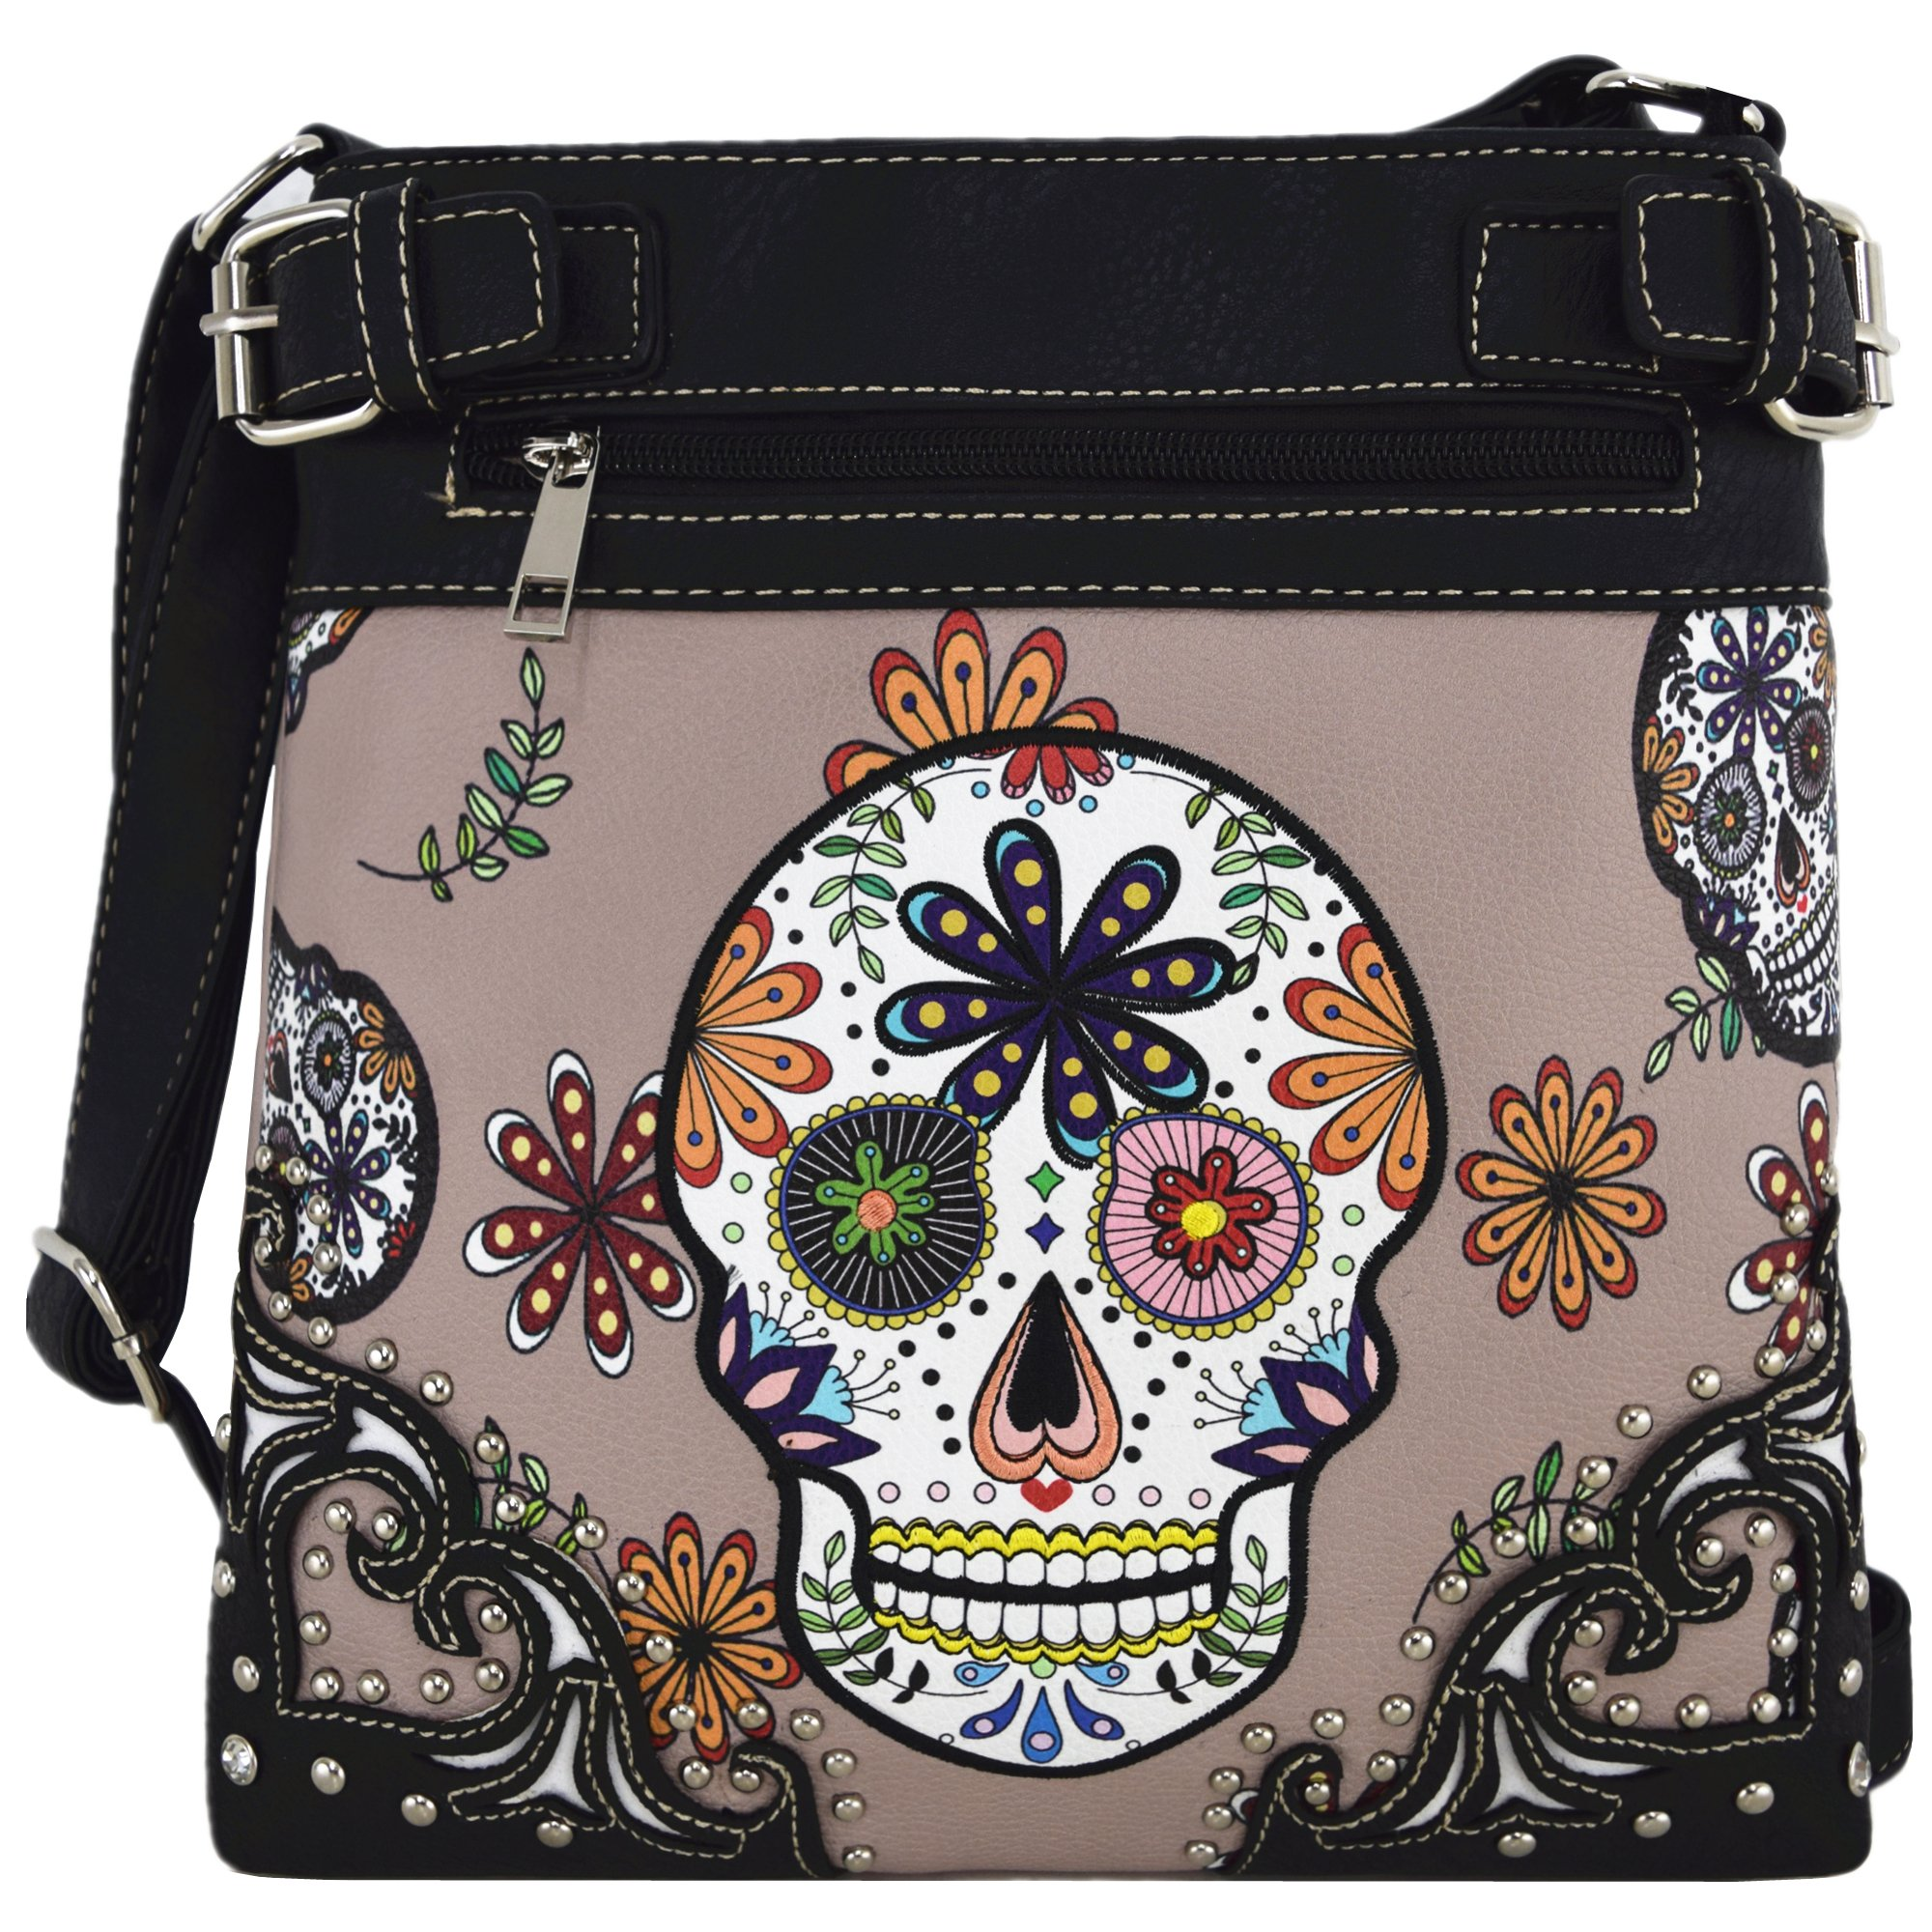 Sugar Skull Day of the Dead Cross Body Handbags Concealed Carry Purses Country Women Single Shoulder Bags (Gray)